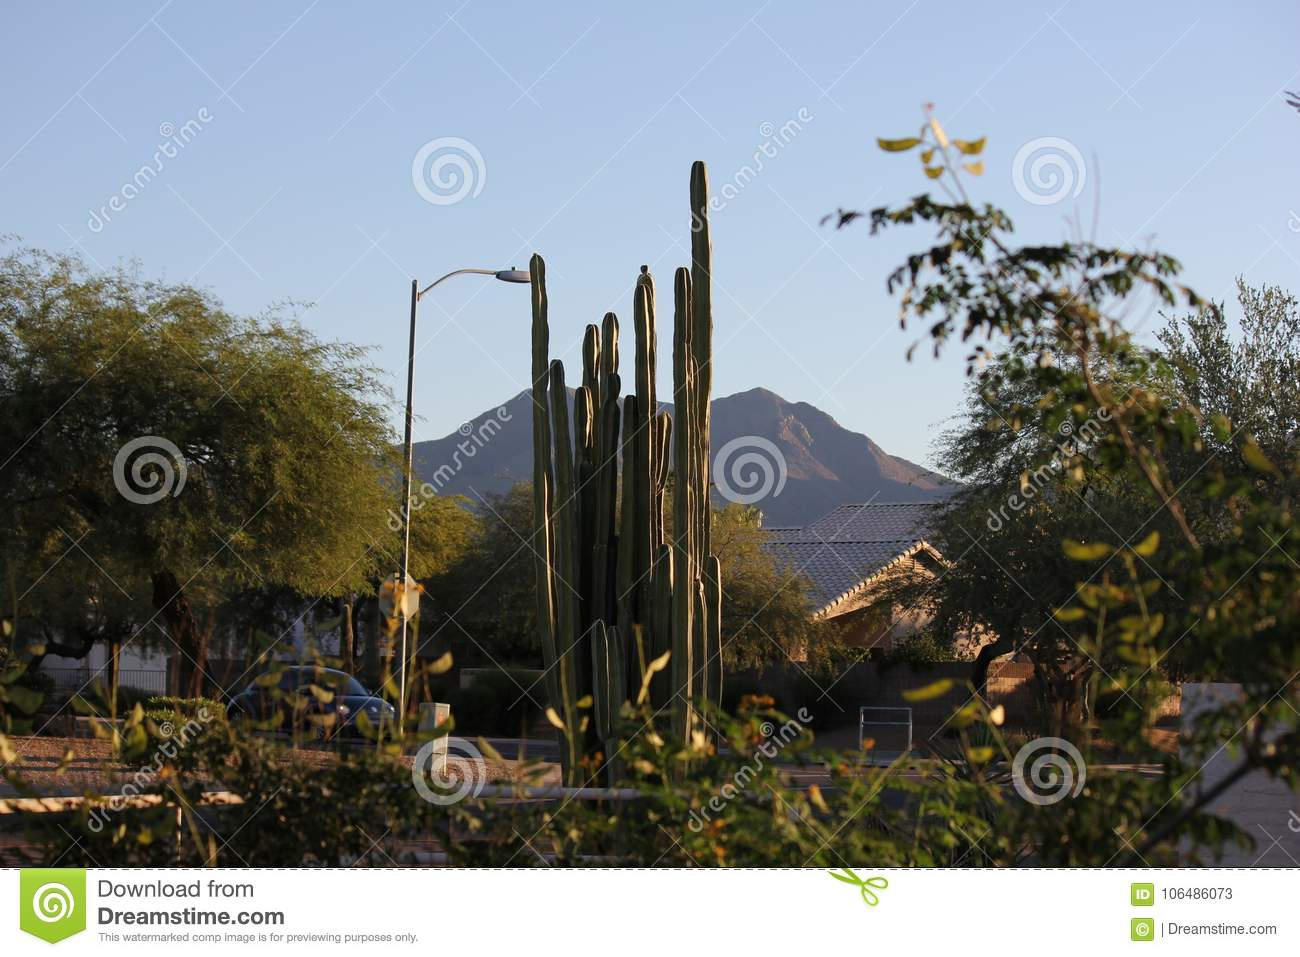 High-desert mountains in the north to subtropical desert lowlands in the south, Arizona presents a variety of discrete desert.